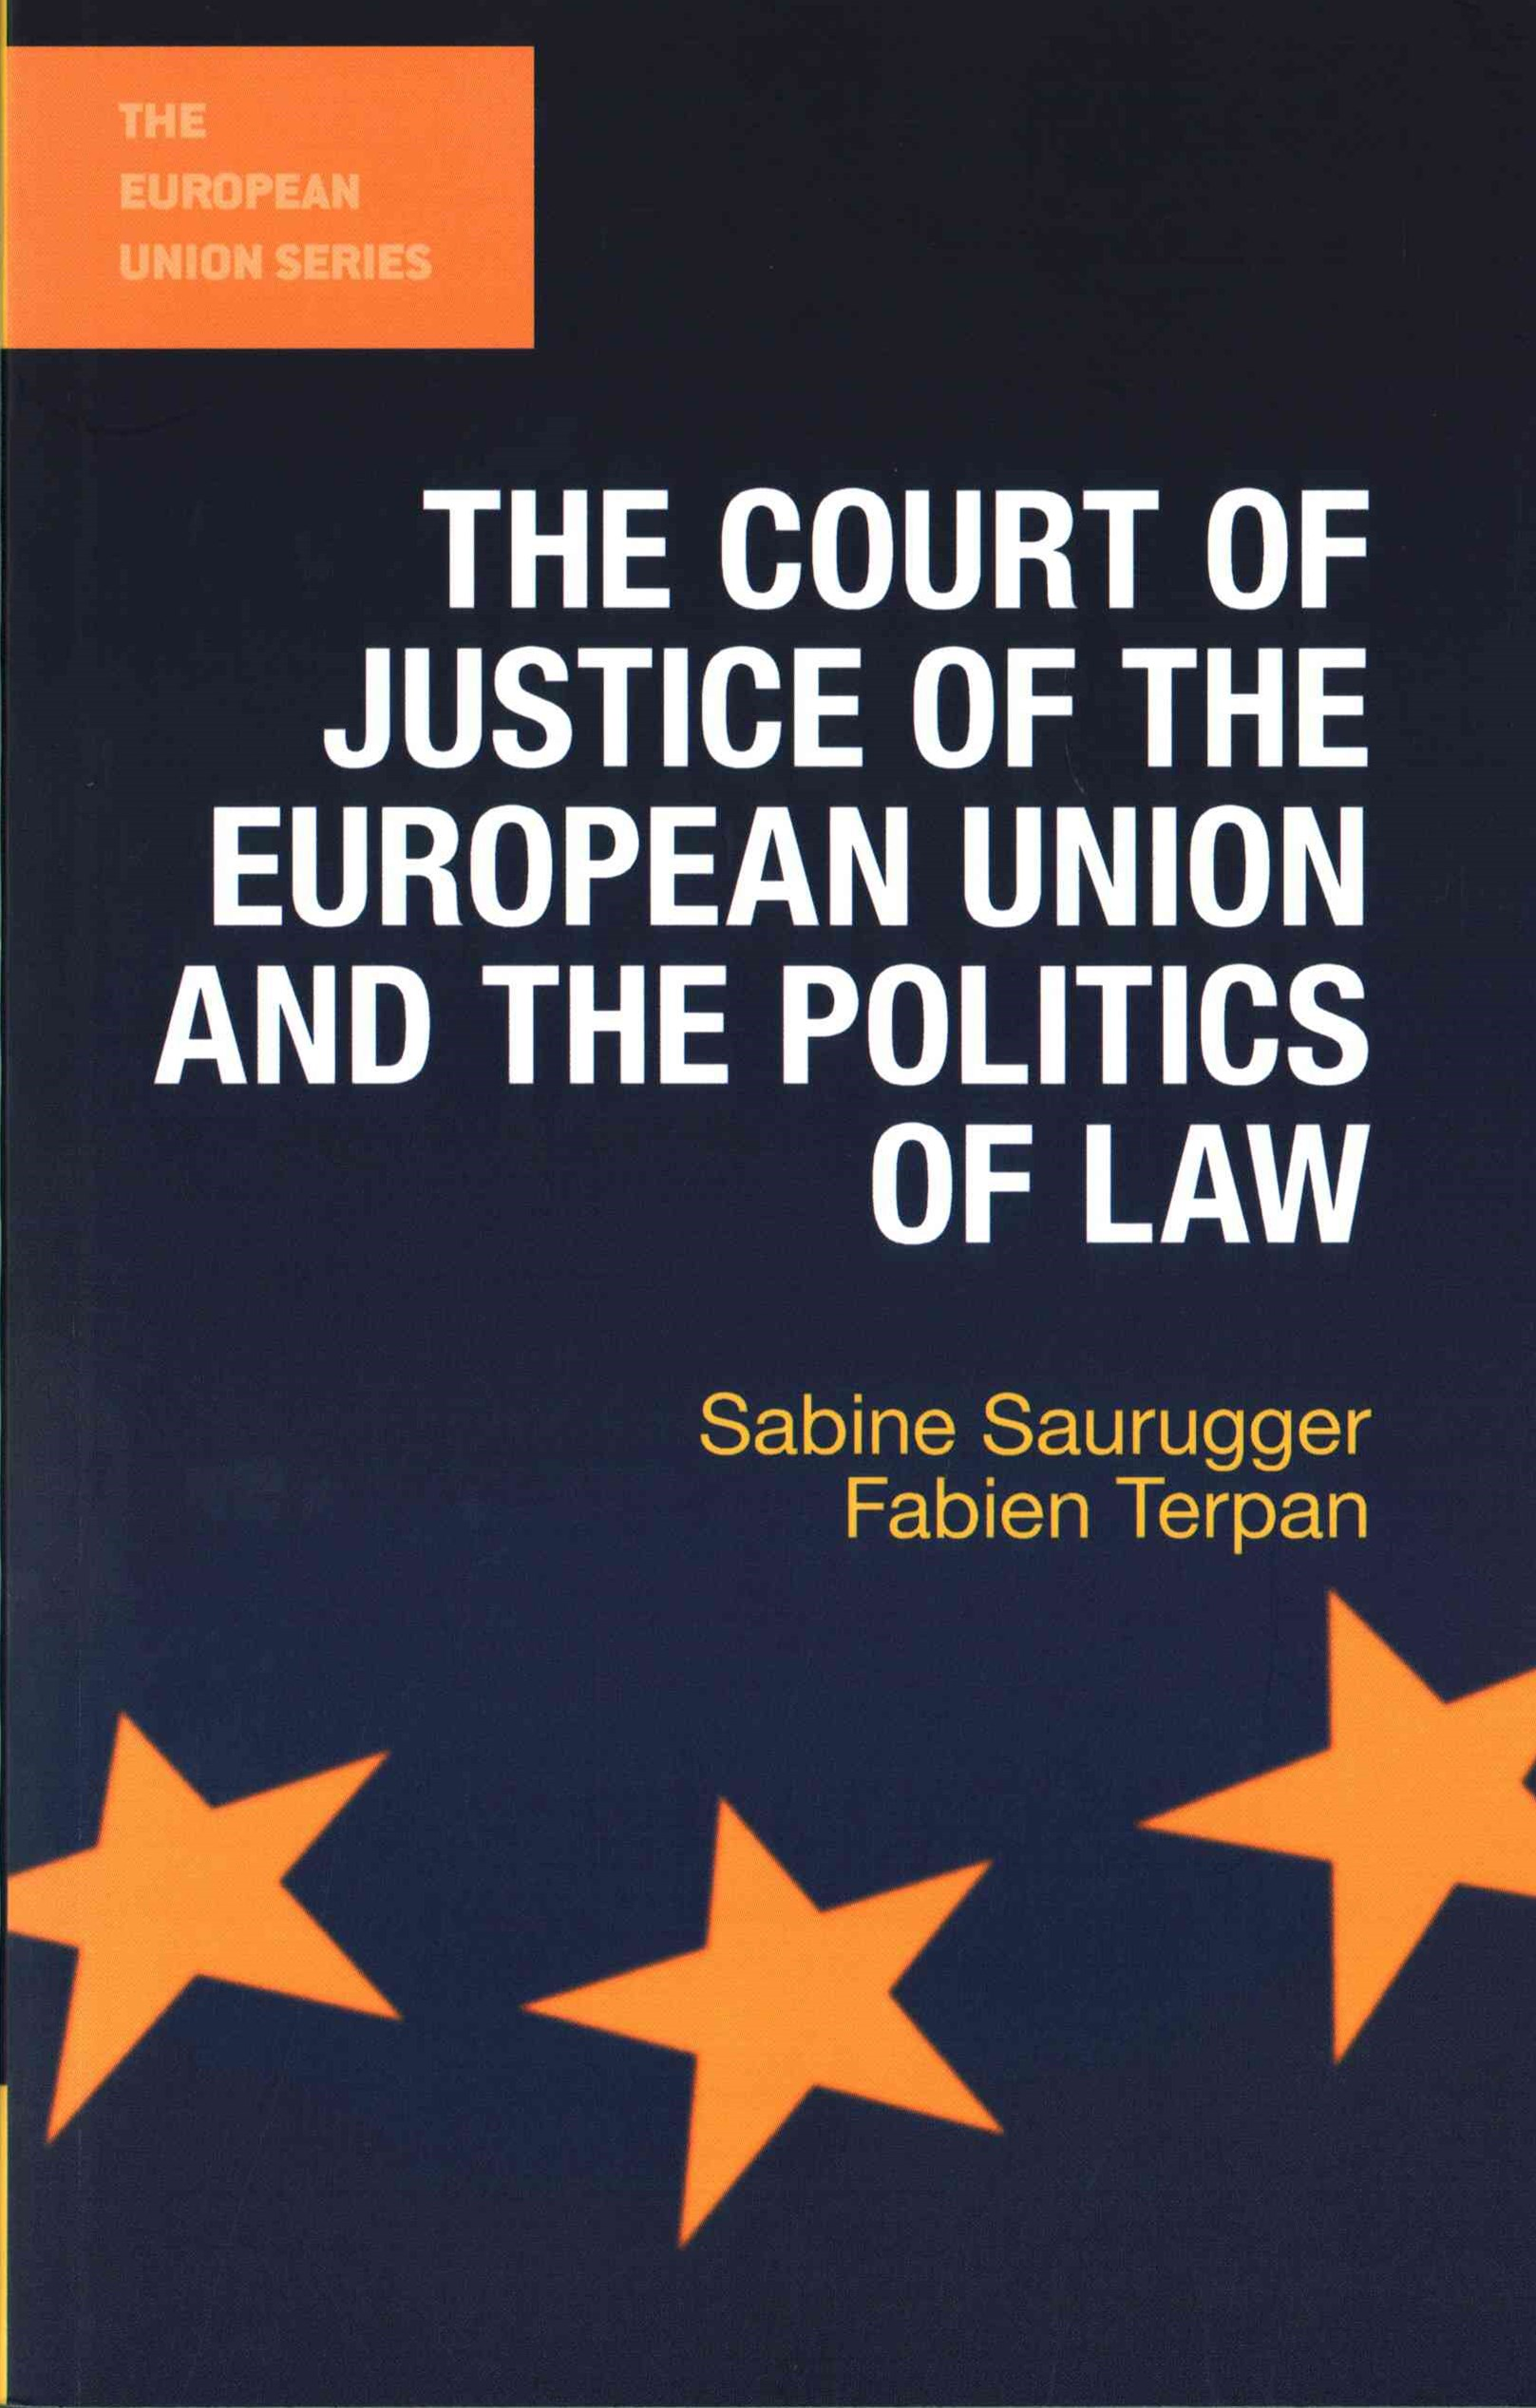 The Court of Justice of the European Union and the Politics of Law